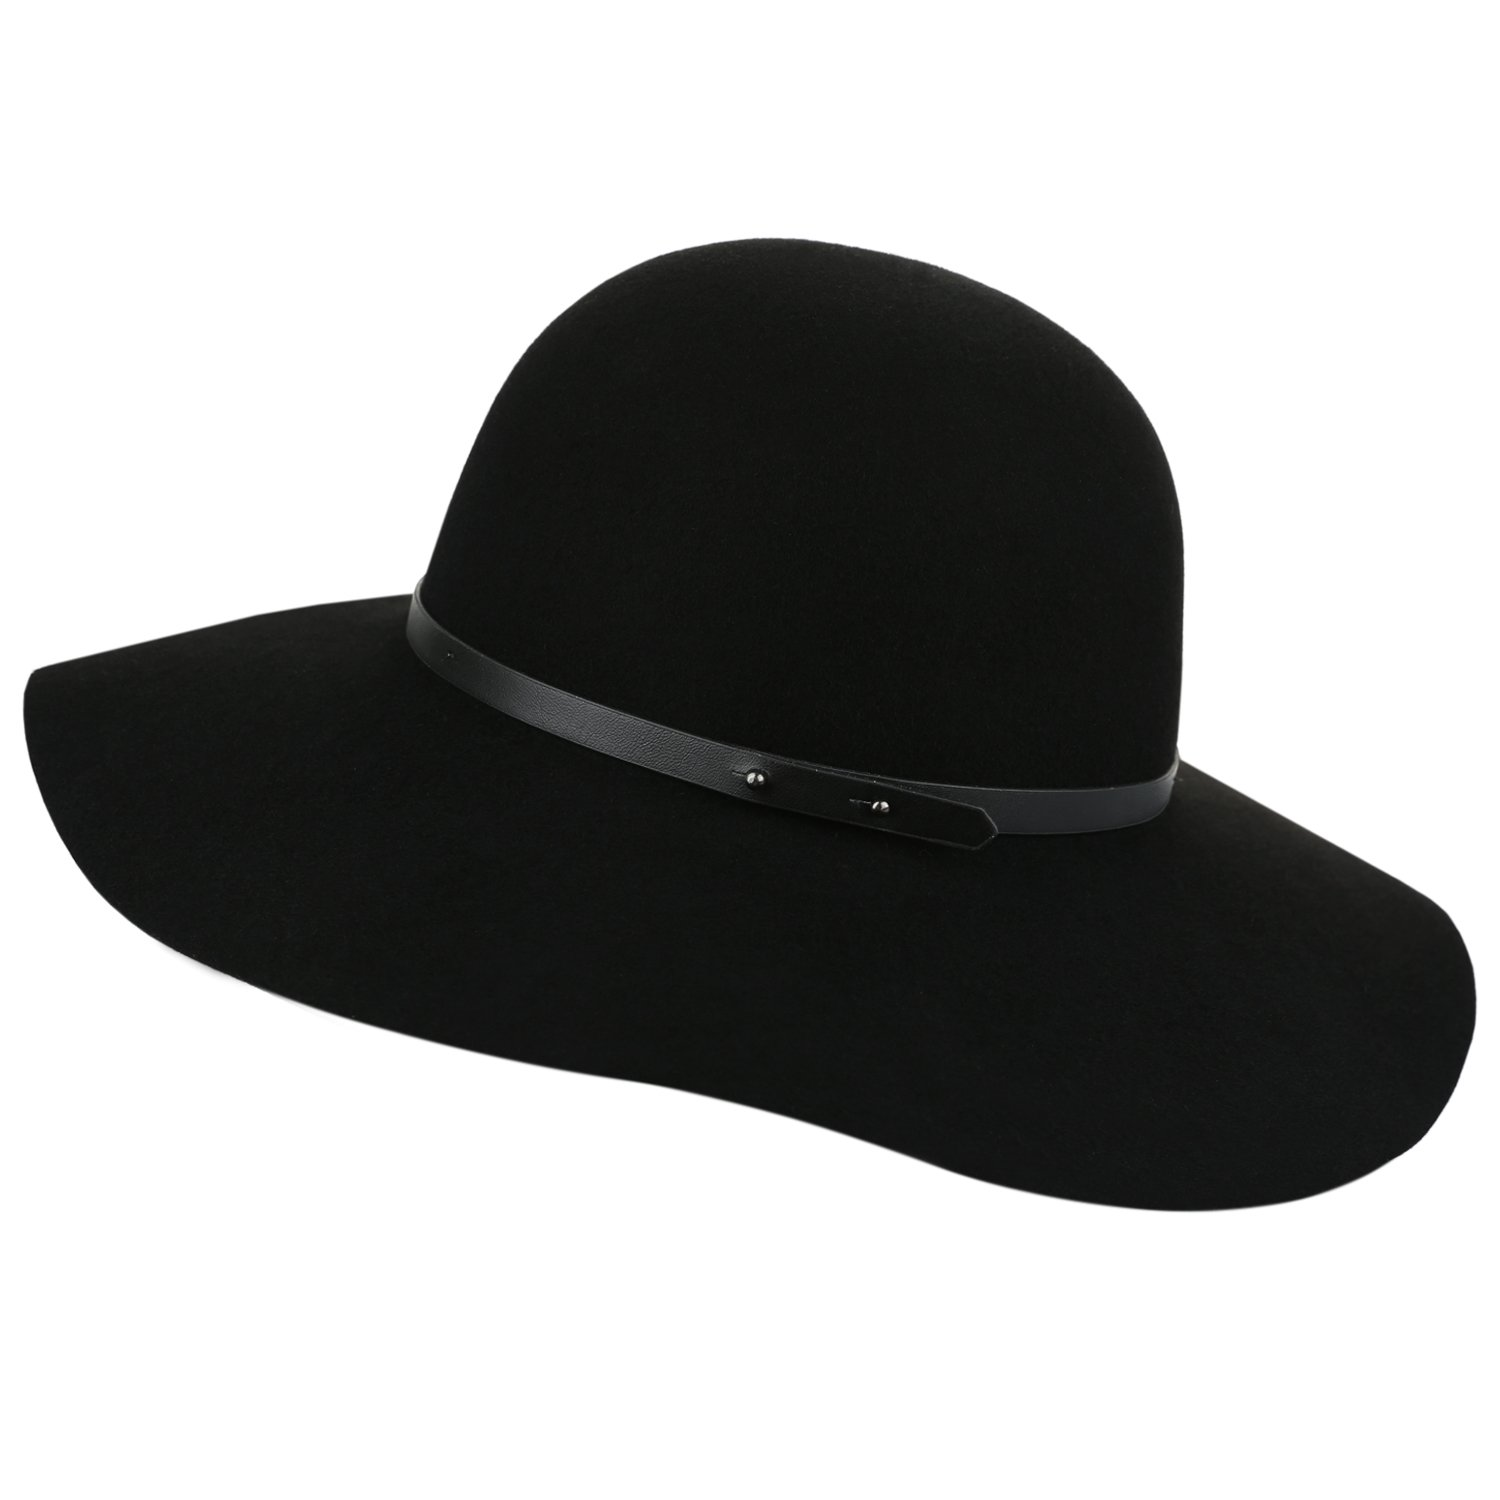 Sedancasesa Wide Brimmed 100% Wool Felt Floppy Hat Vintage Women Warm Triby Hats (Black)